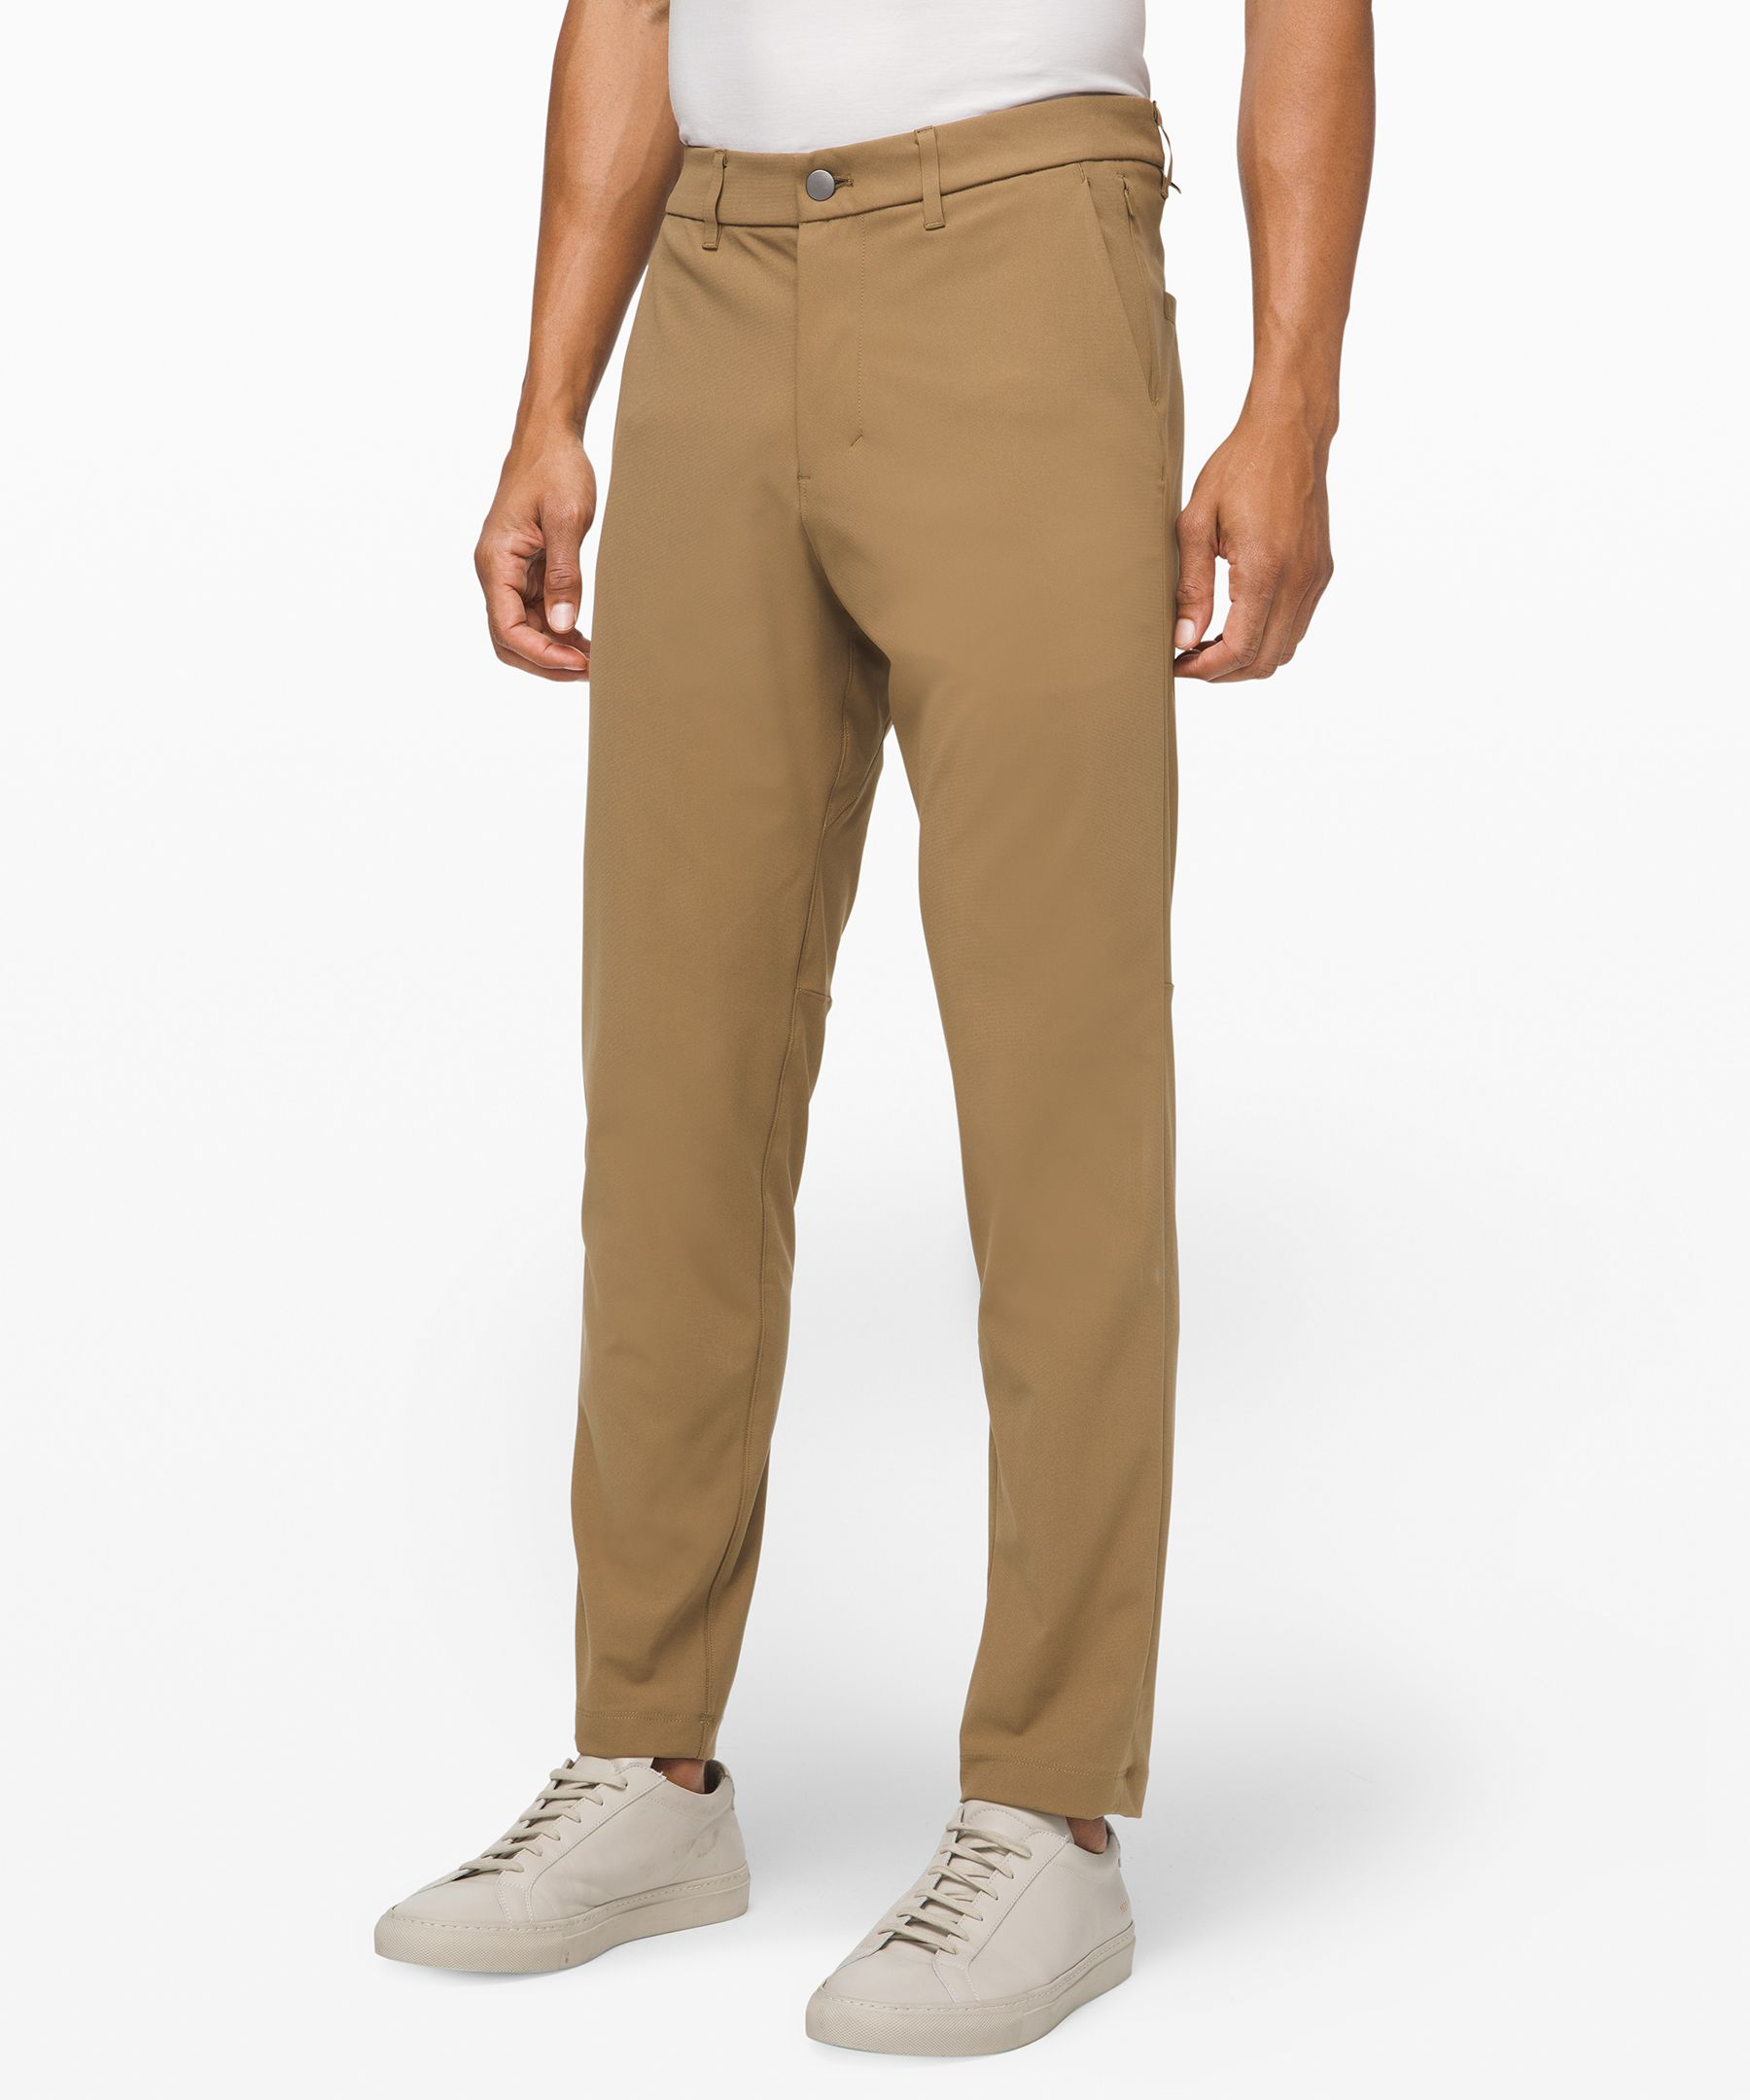 Inspired by chinos, these  slim-fit pants are made for  all-day comfort.